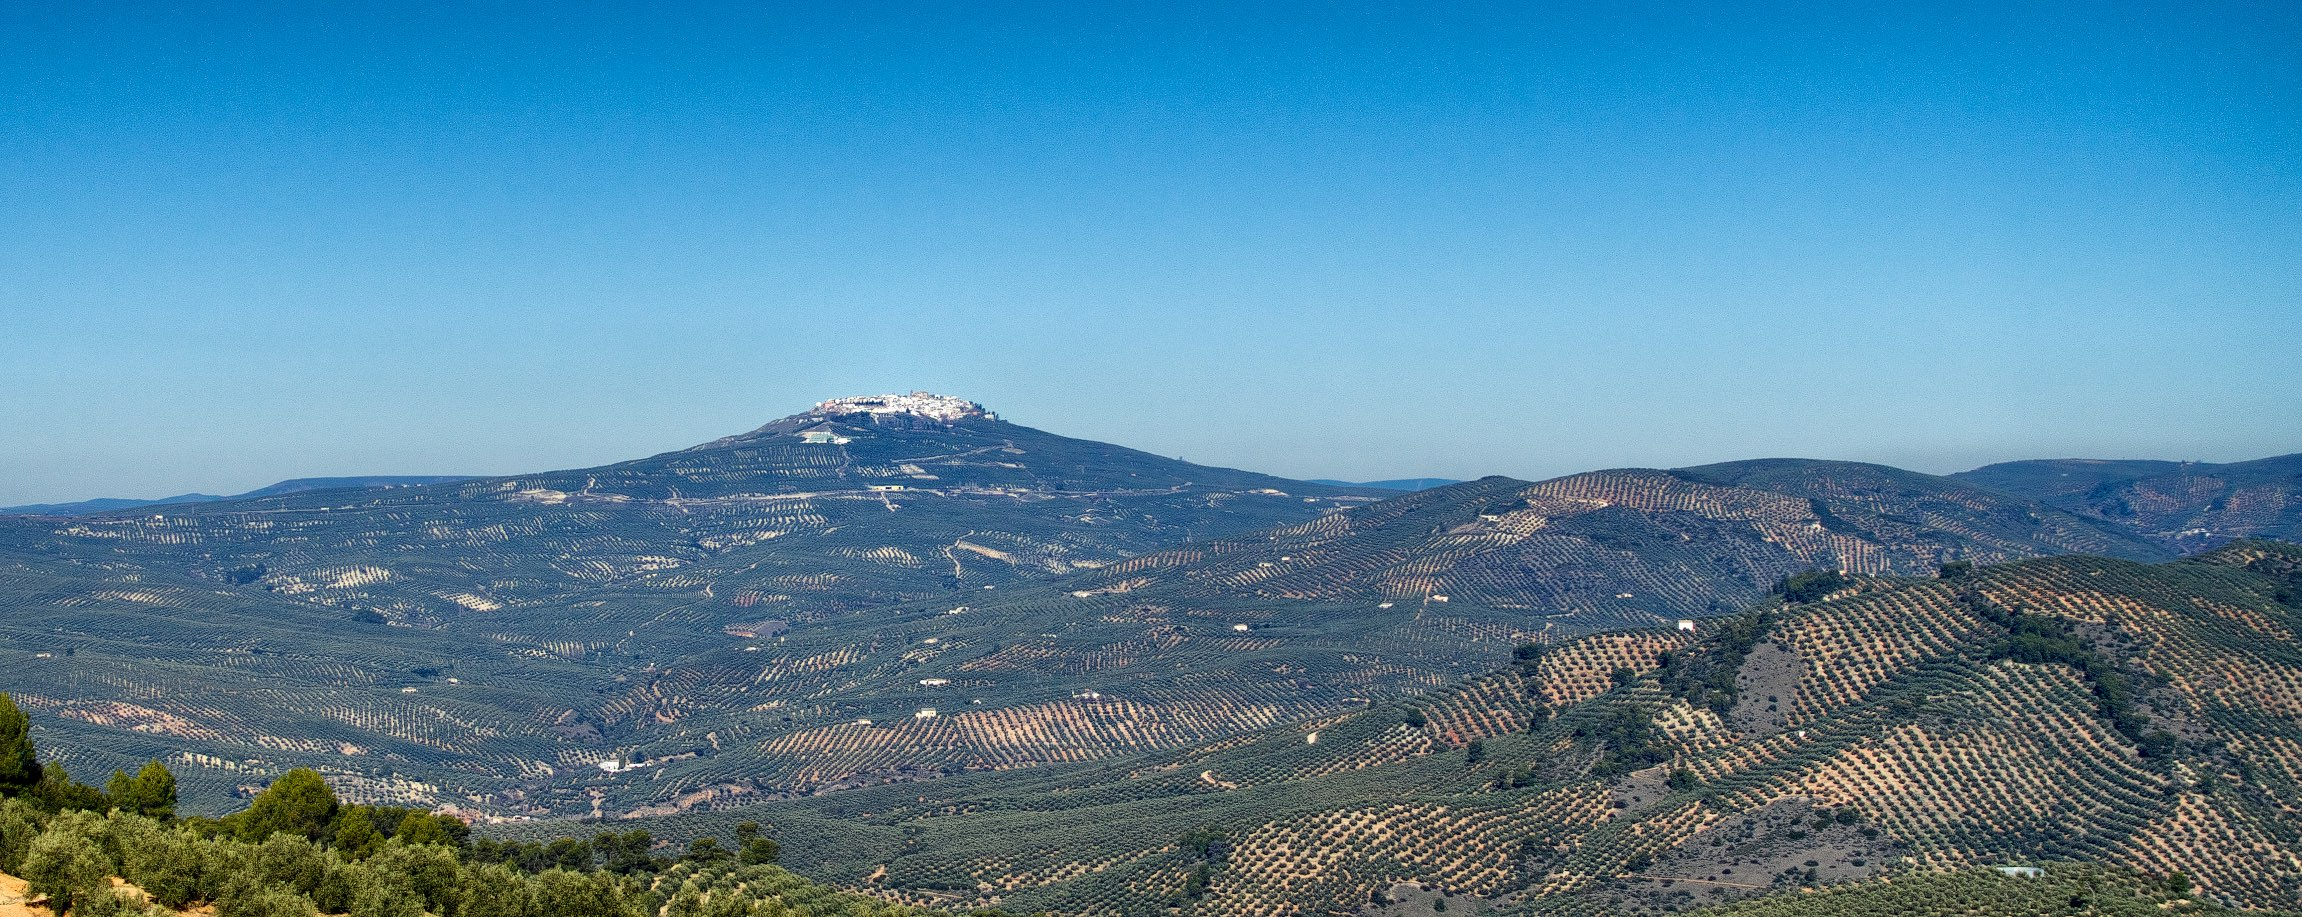 Great Cycling Climbs of Andalucia - Iznatoraf - The Eternal Lookout